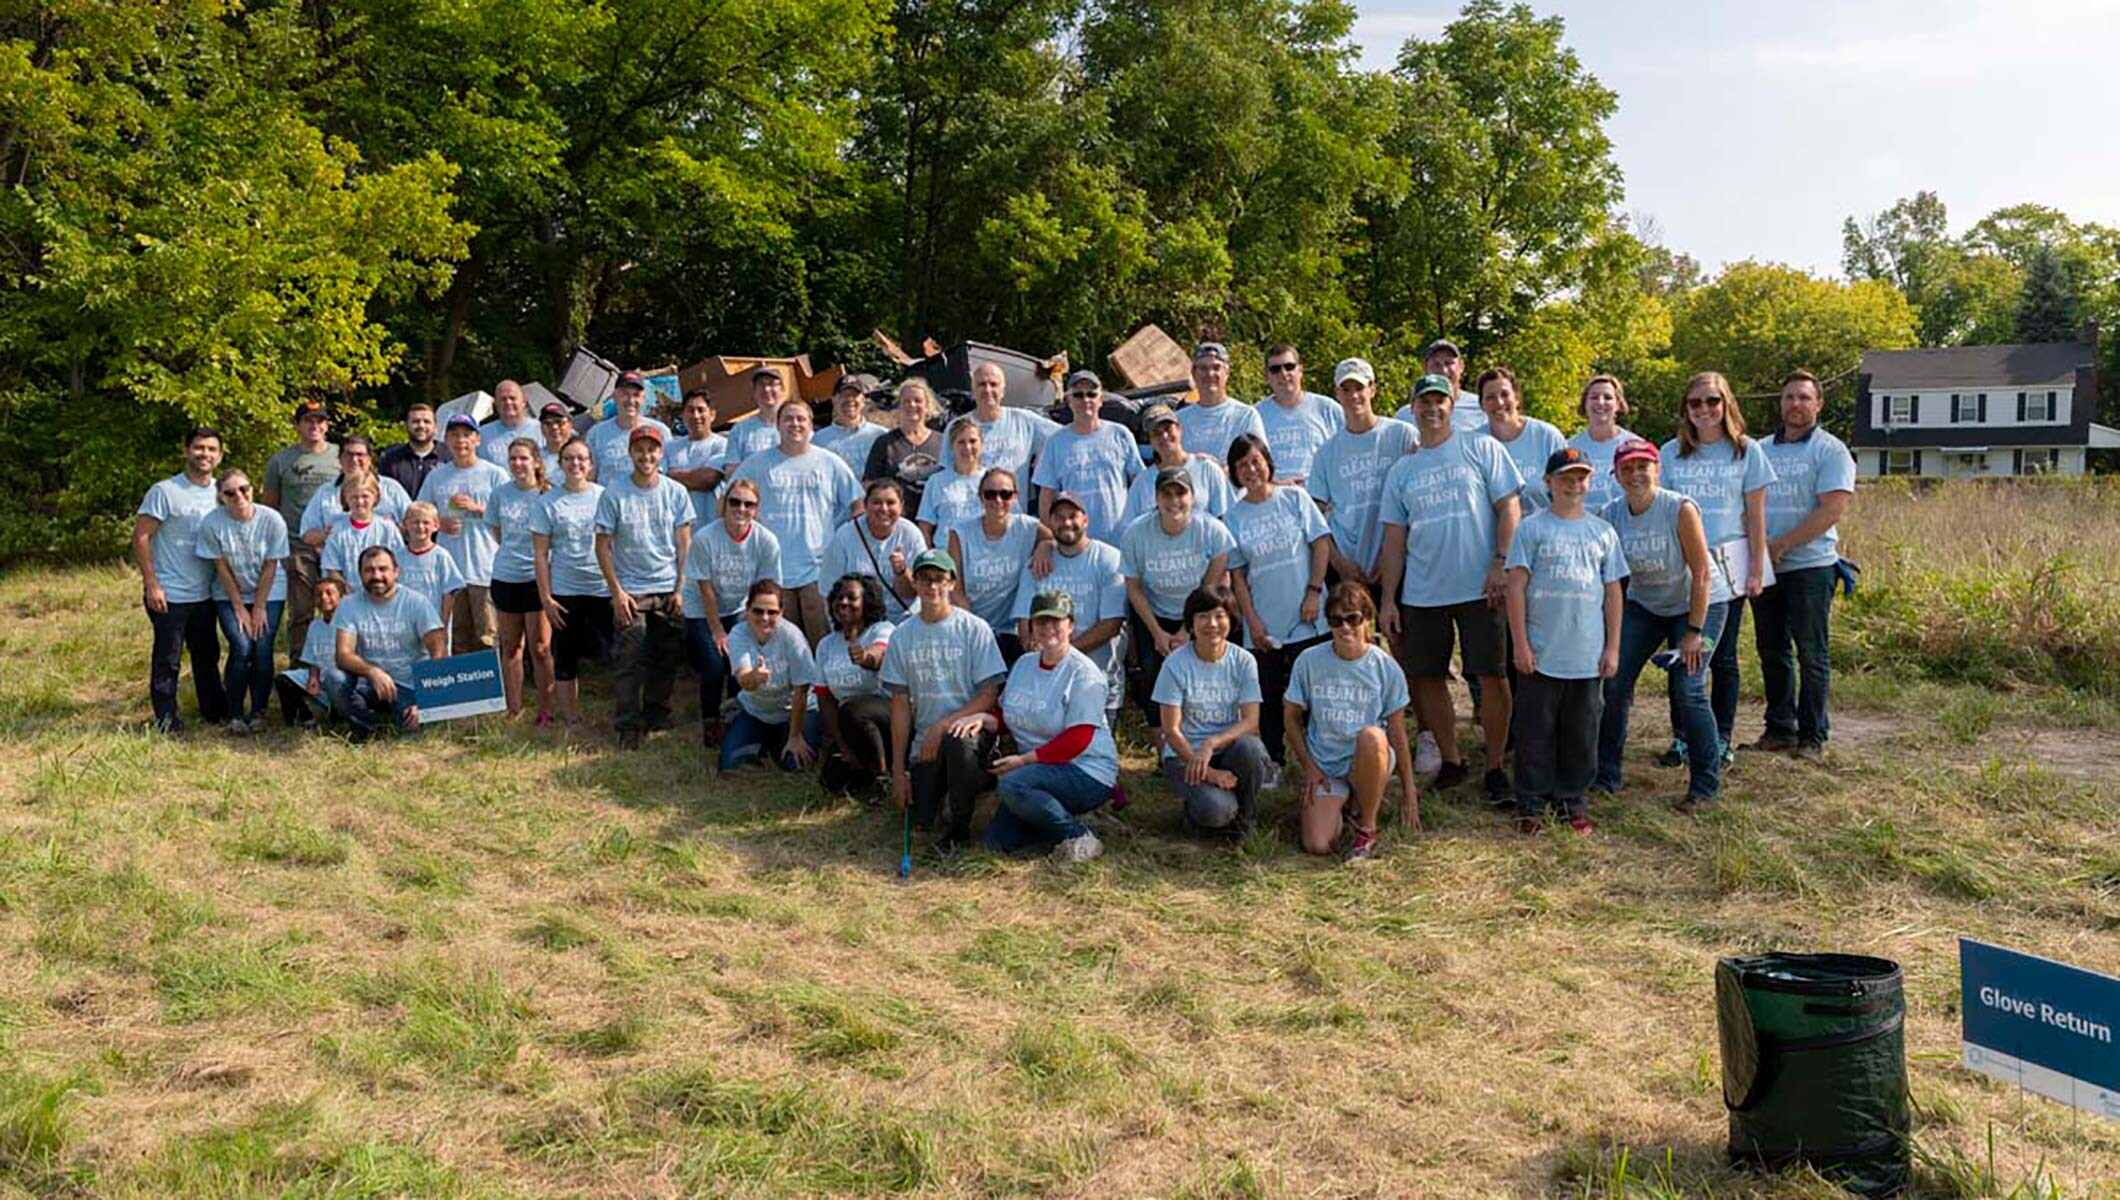 Dow successfully rallies employees and partners to reduce marine litter with its global campaign #PullingOurWeight Beach Clean-up